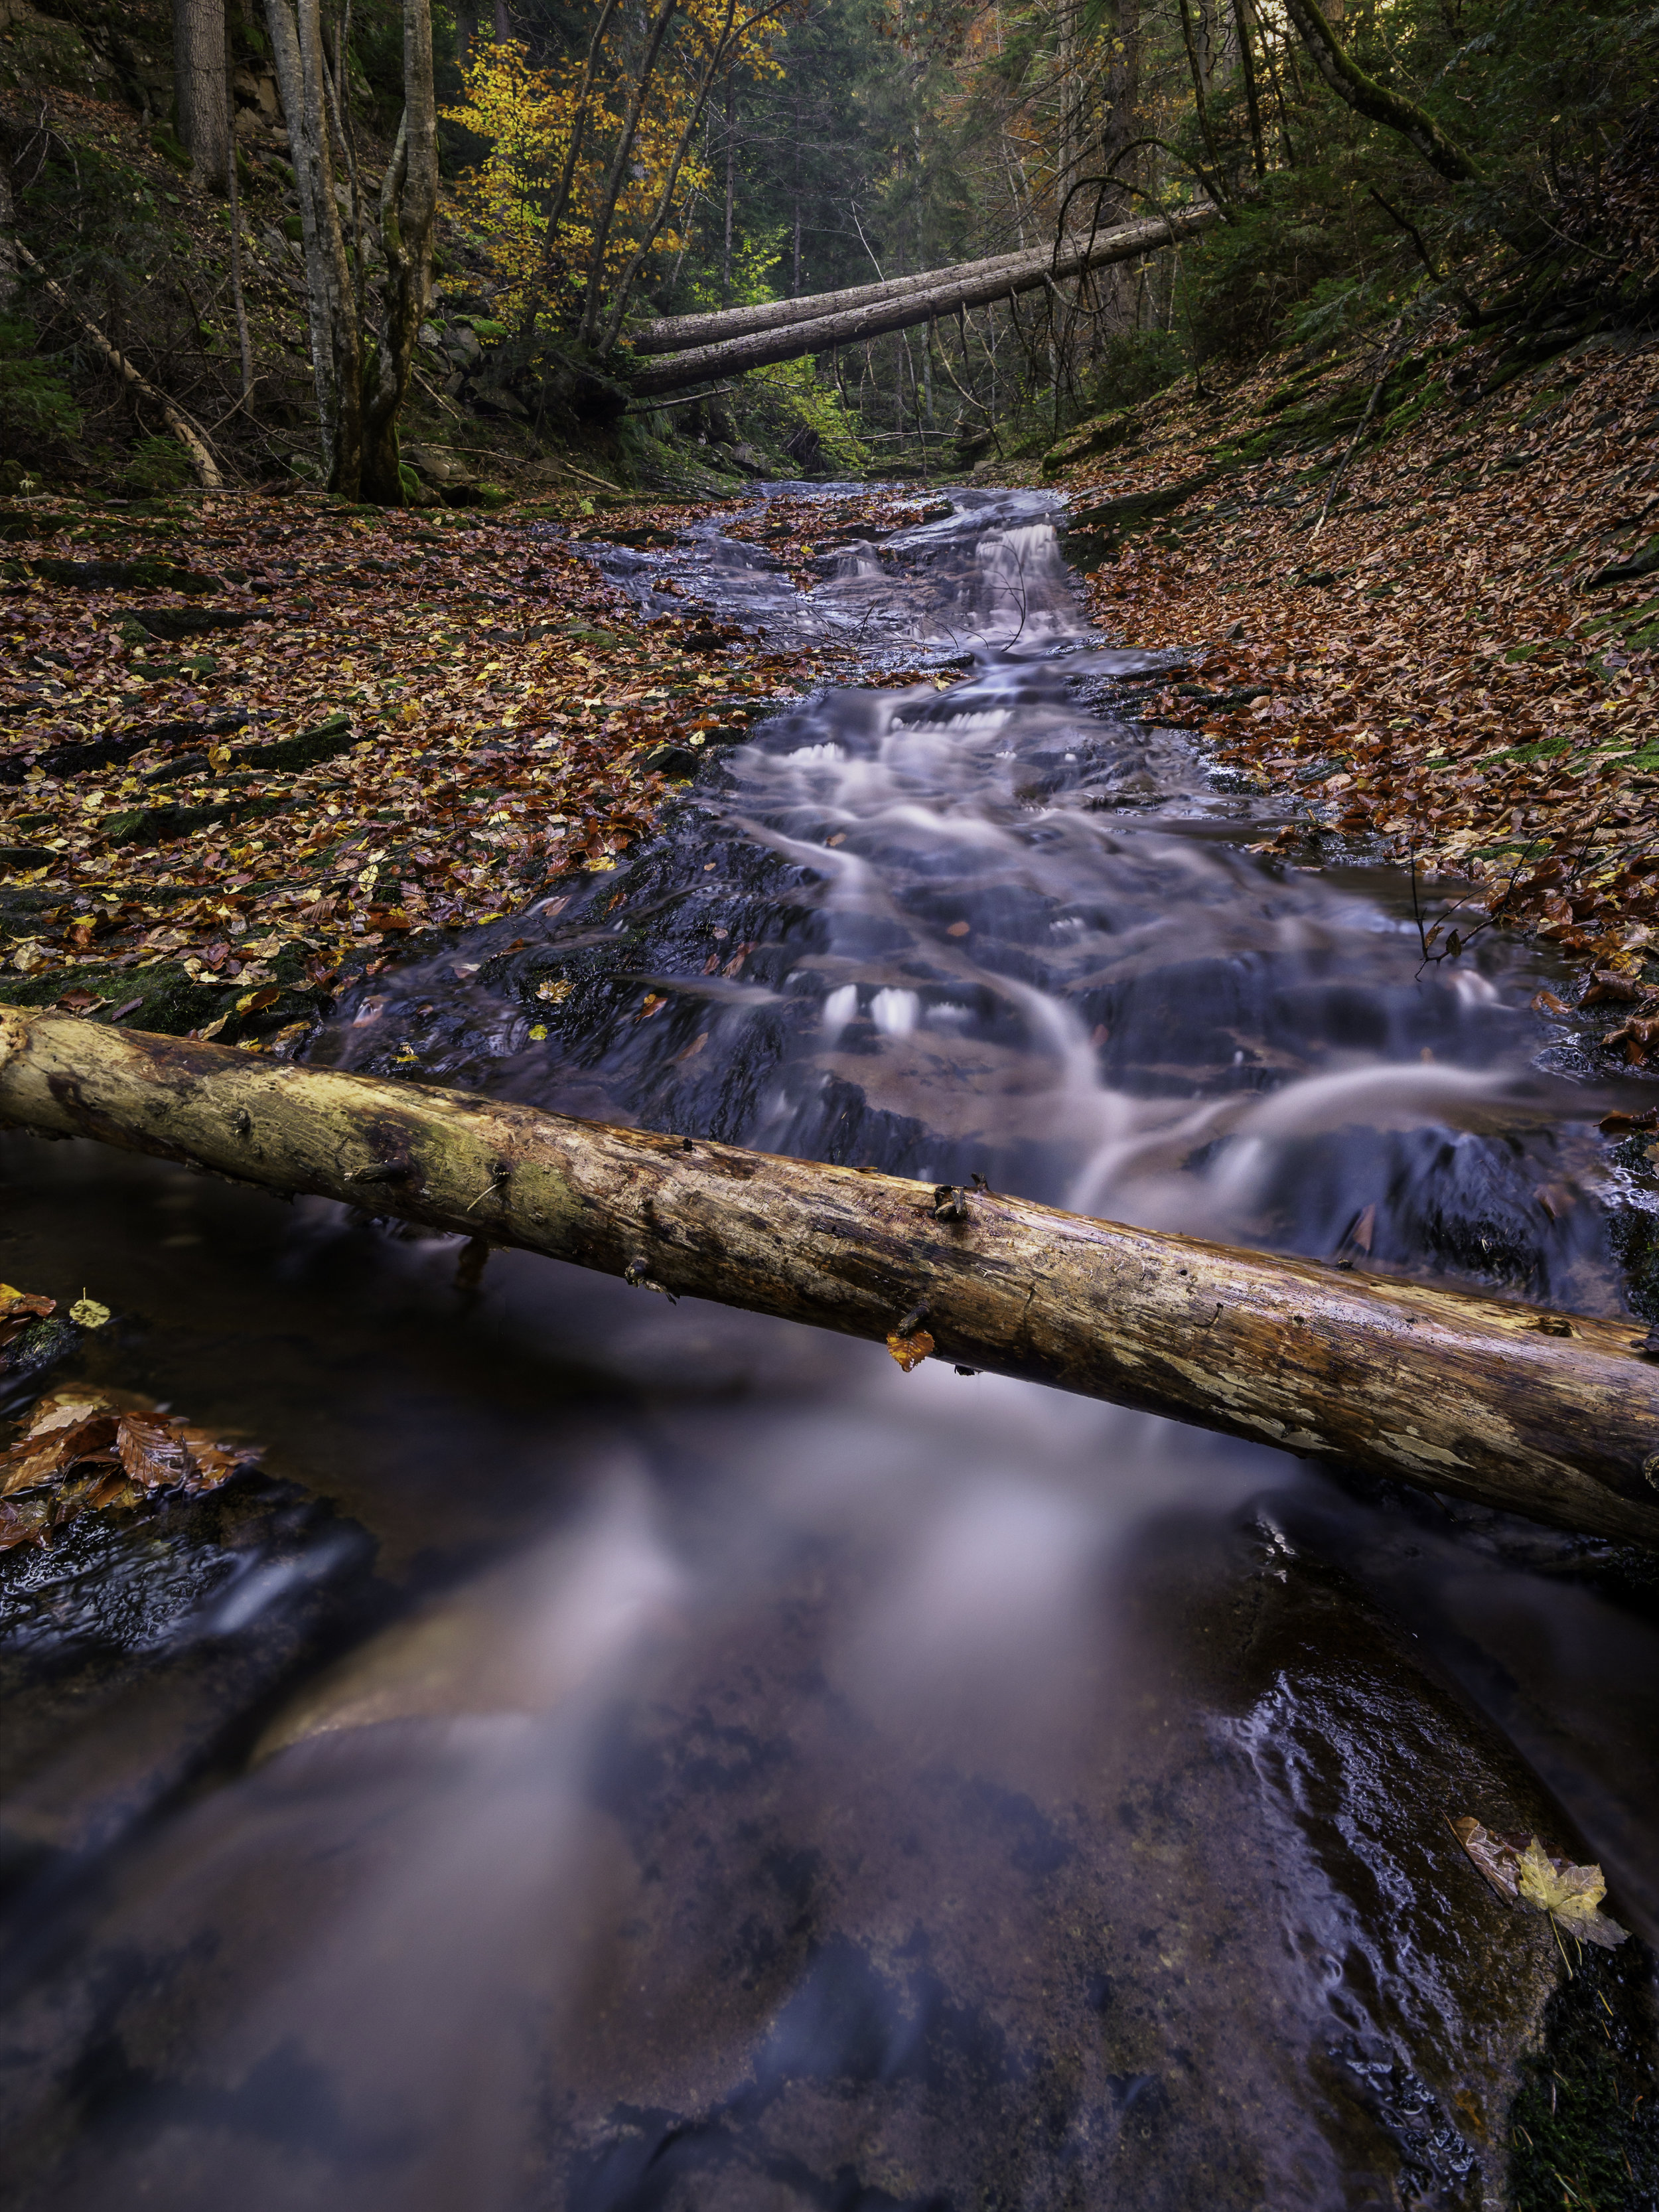 log-rhodopi-mountain-stream-fall-colours-autumn-leaves-canyonof waterfalls-colours-phototour-bulgaria-daniel-2018-portrait-Ver-2(Print).jpg